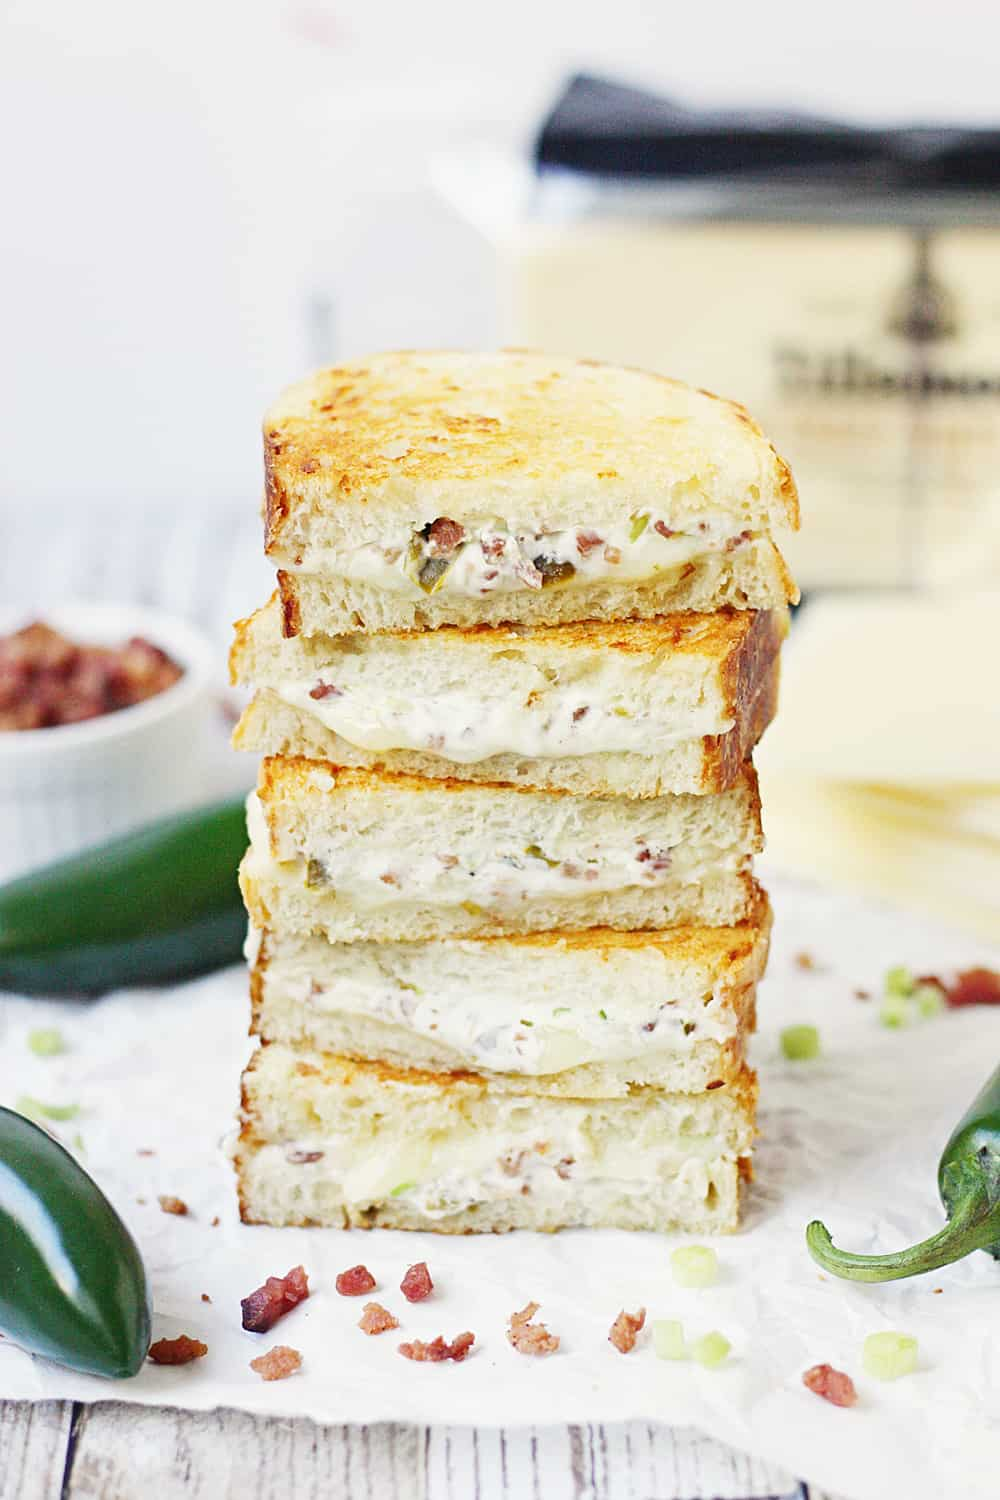 EASY Jalapeno Popper Grilled Cheese Sandwich - This easy jalapeno popper grilled cheese sandwich combines that amazing jalapeño popper flavor with bacon and sharp white cheddar for one irresistible gourmet grilled cheese! #grilledcheese #jalapeno #jalapenopopper #sandwich #grilledcheesesandwich #cheese #easyrecipe #recipe #halfscratched #maindish #savory